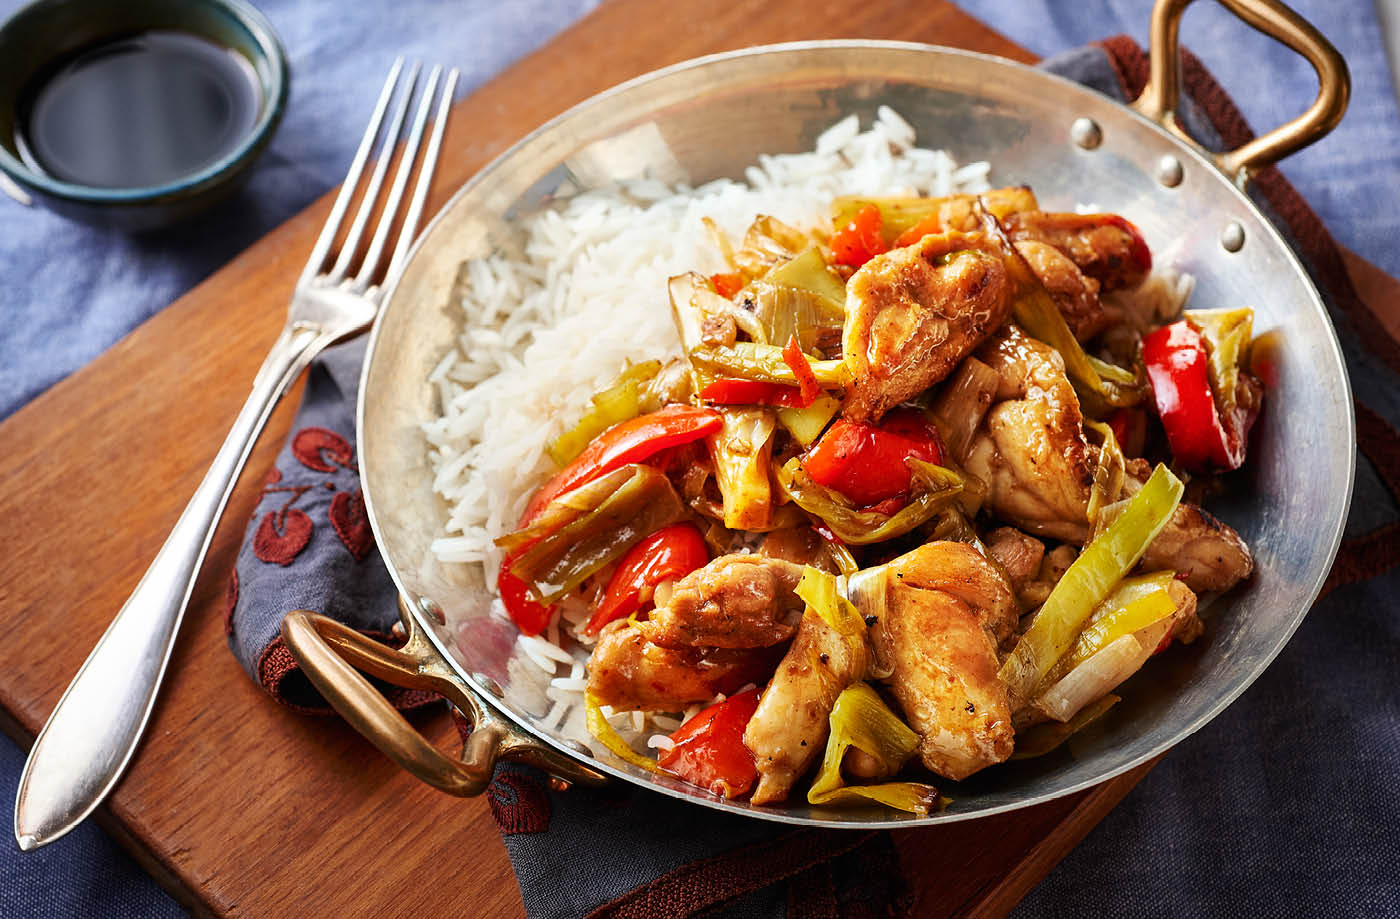 Chicken stir fry stir fry recipes tesco real food forumfinder Image collections